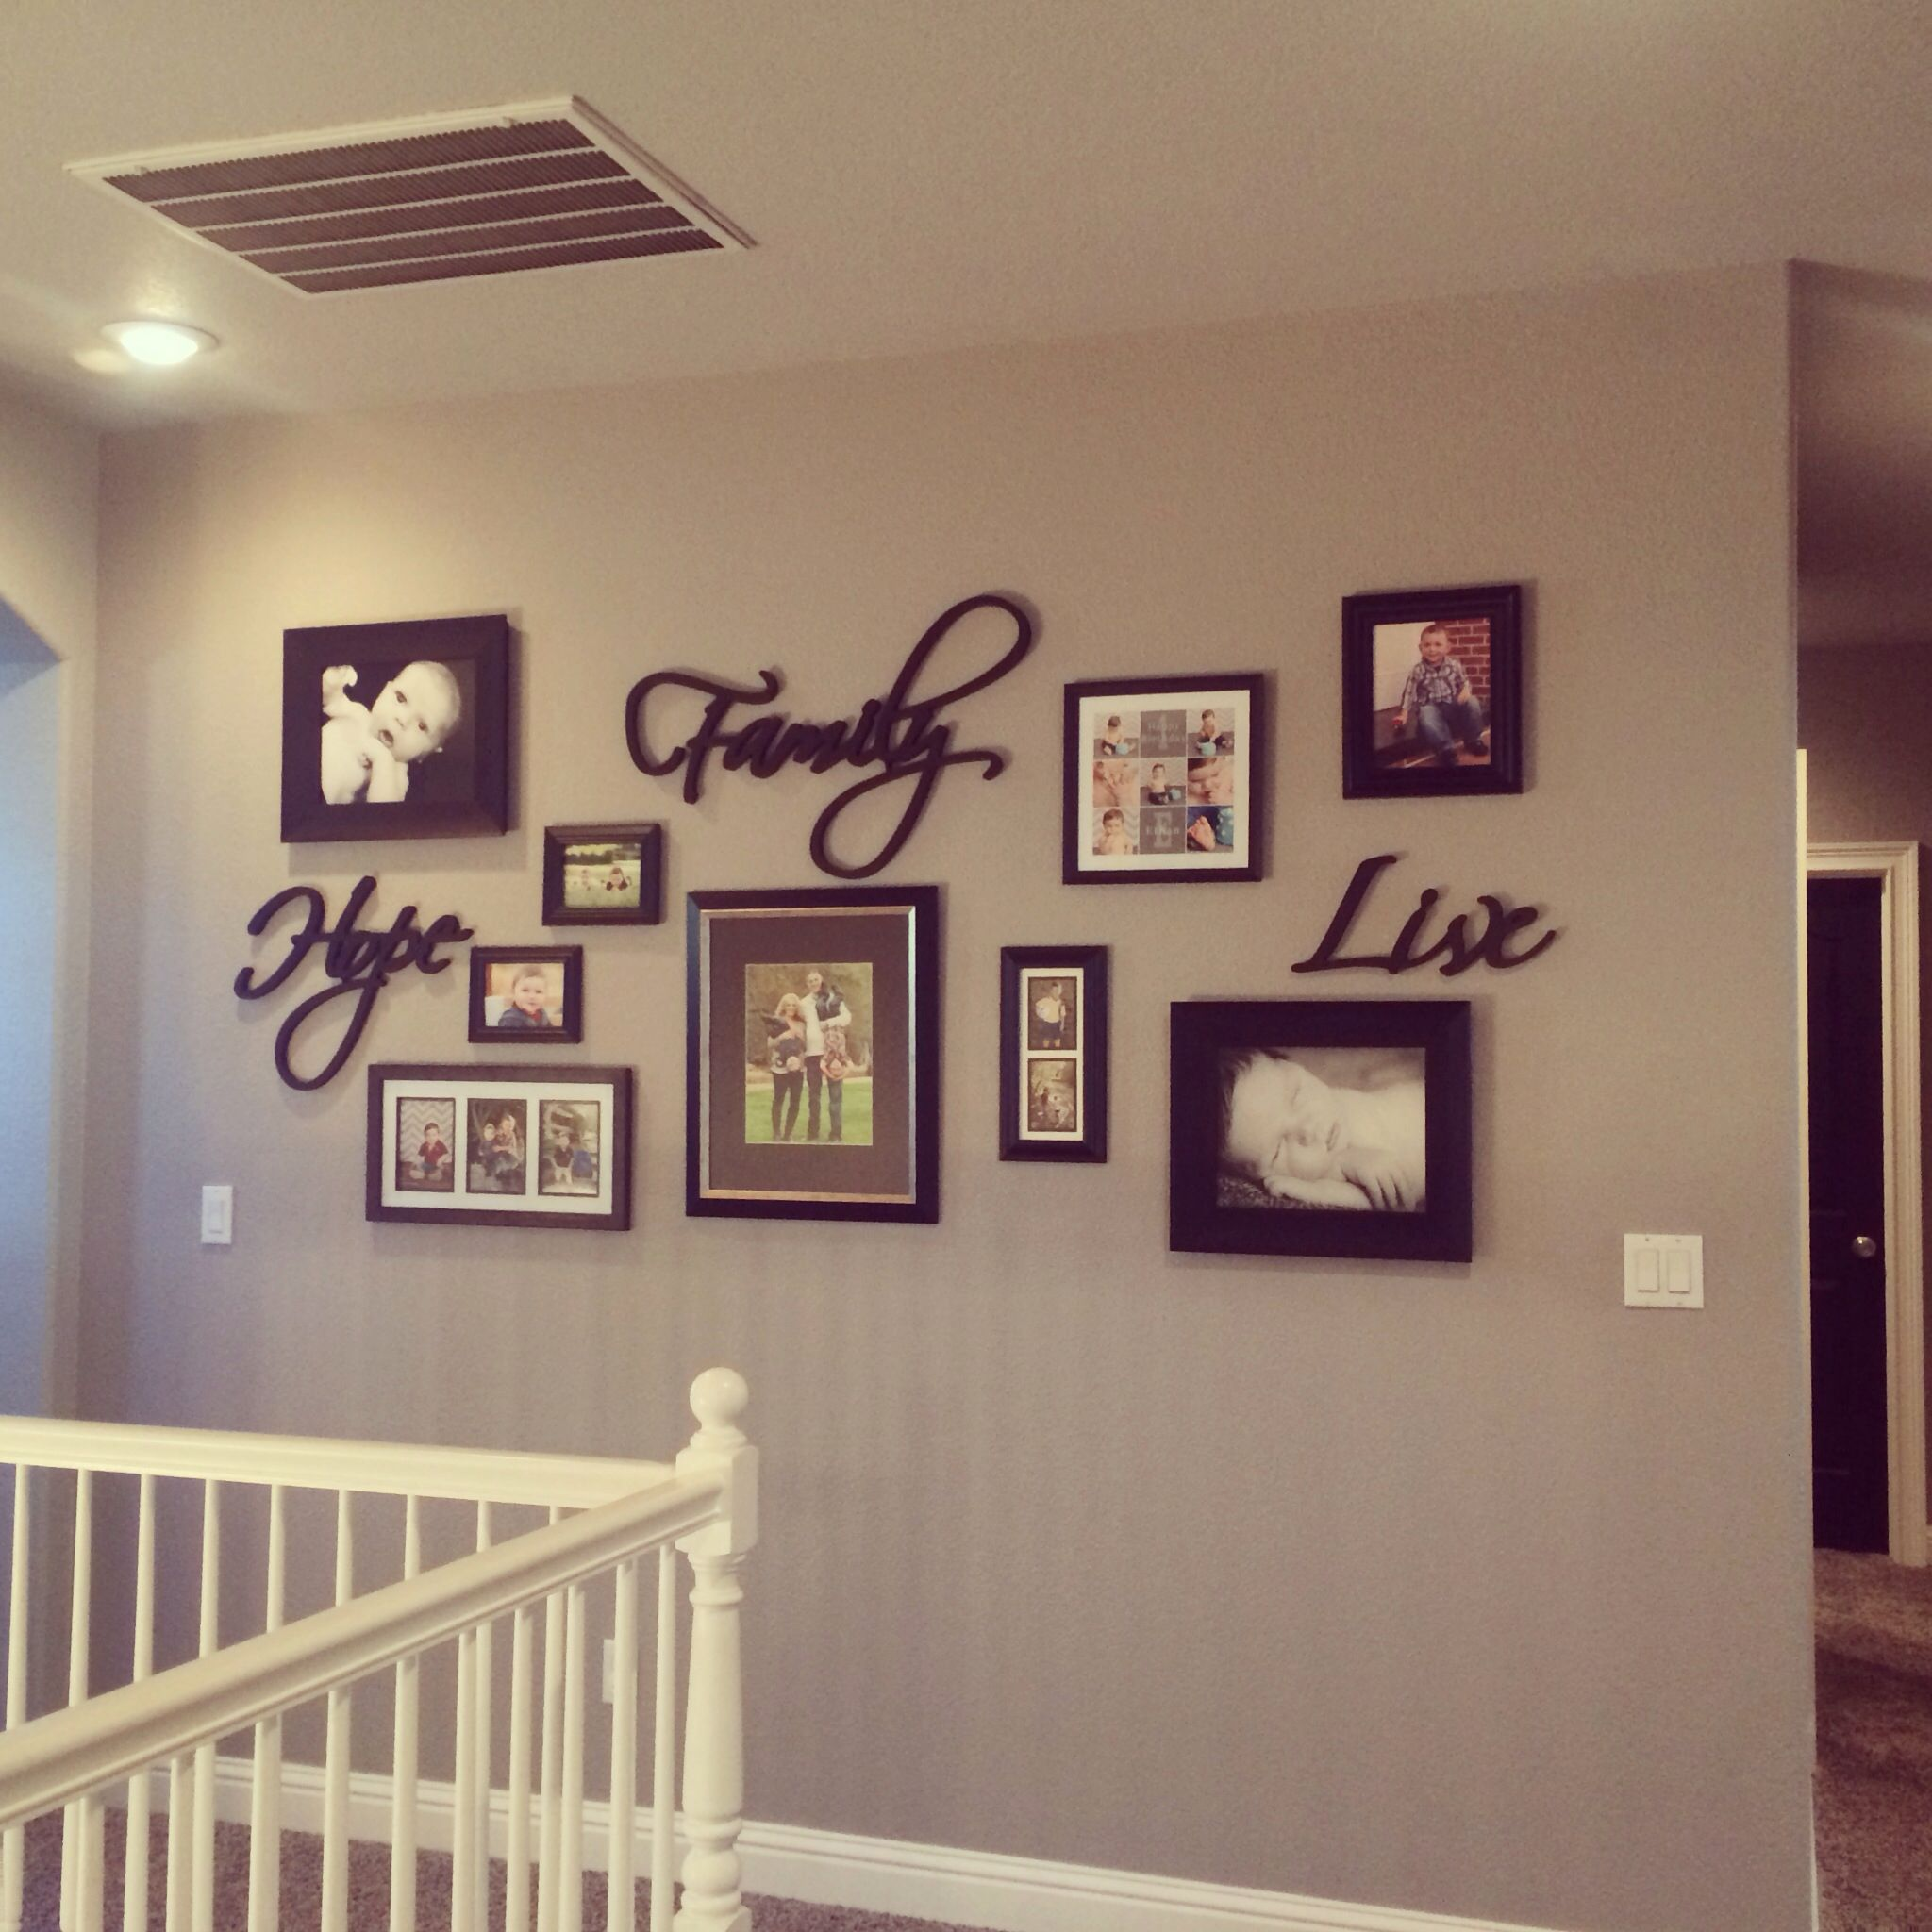 Home Gallery Design Ideas: Gallery Wall, Greige Walls, Black Doors, Home Decor